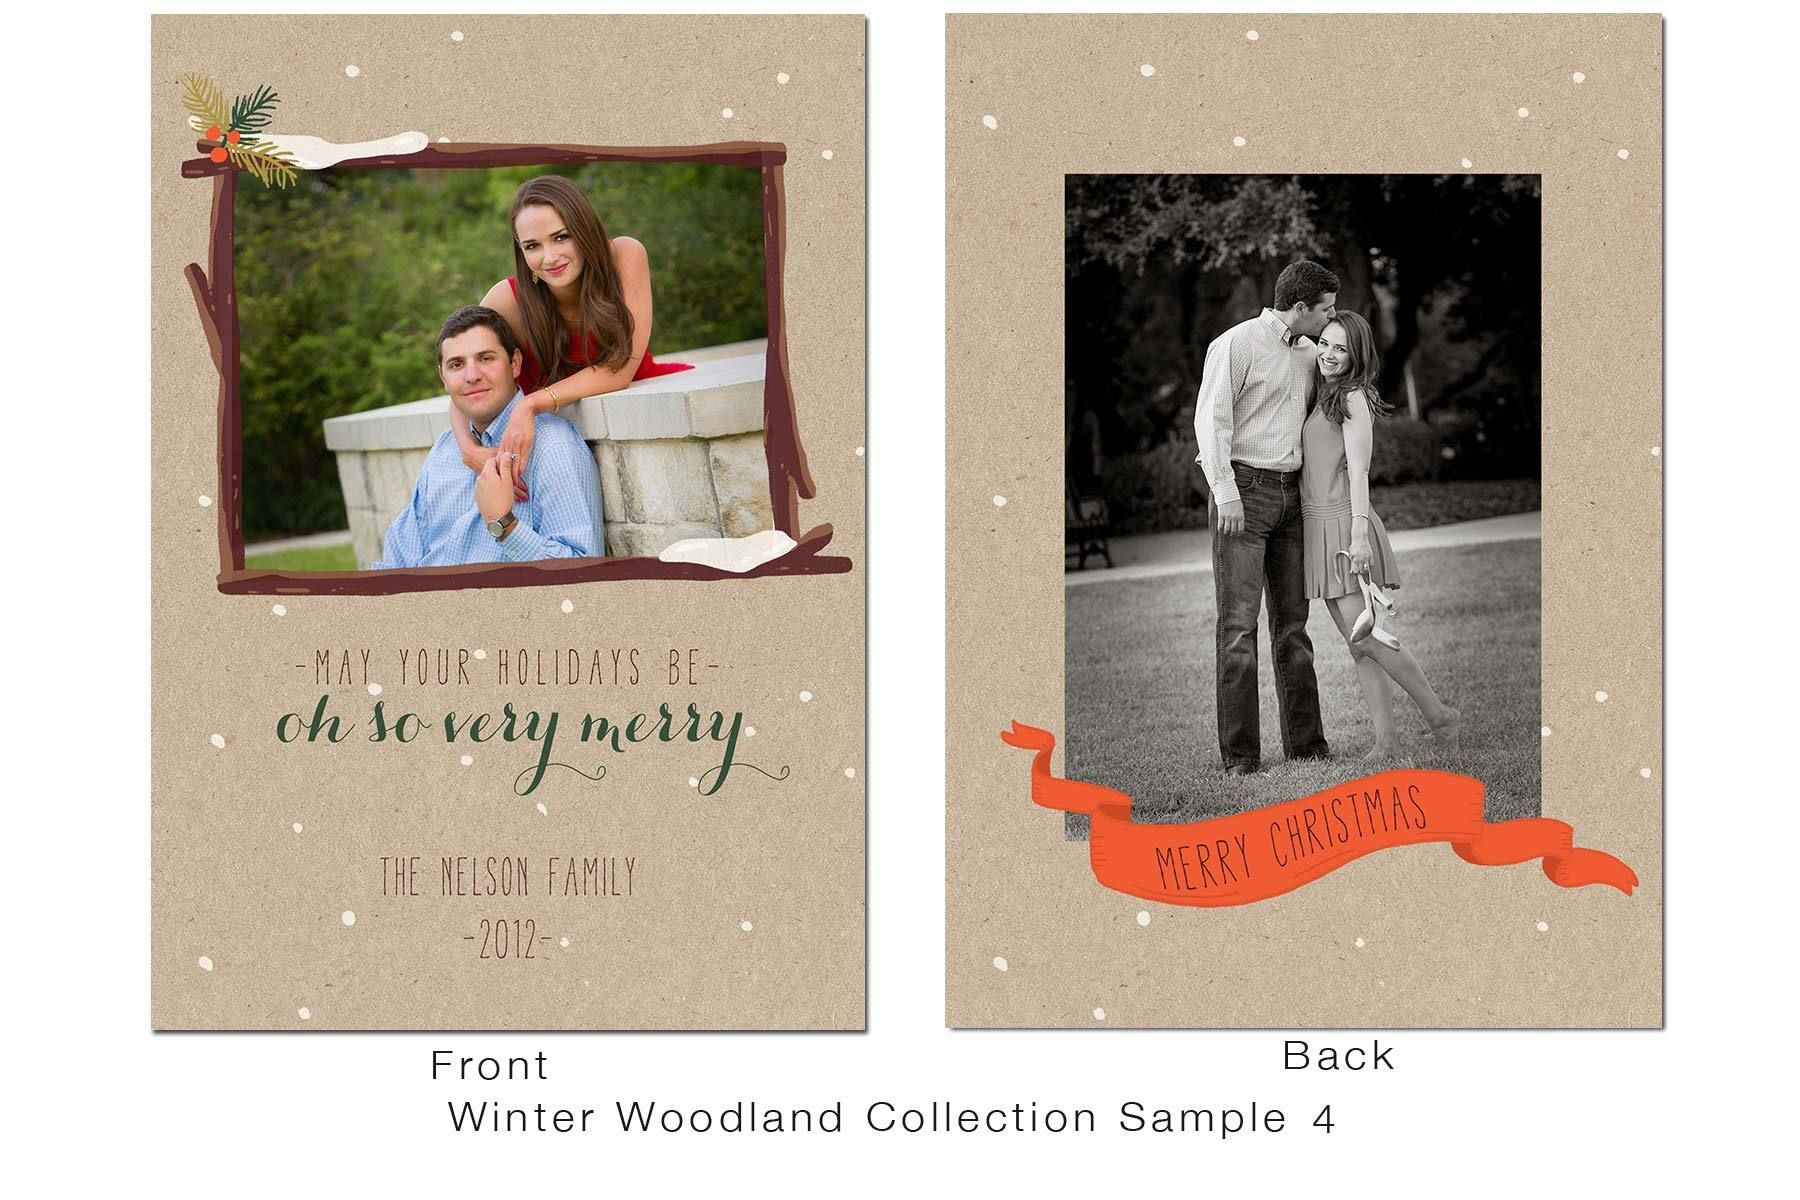 1winter_woodland_collection_sample_4.jpg